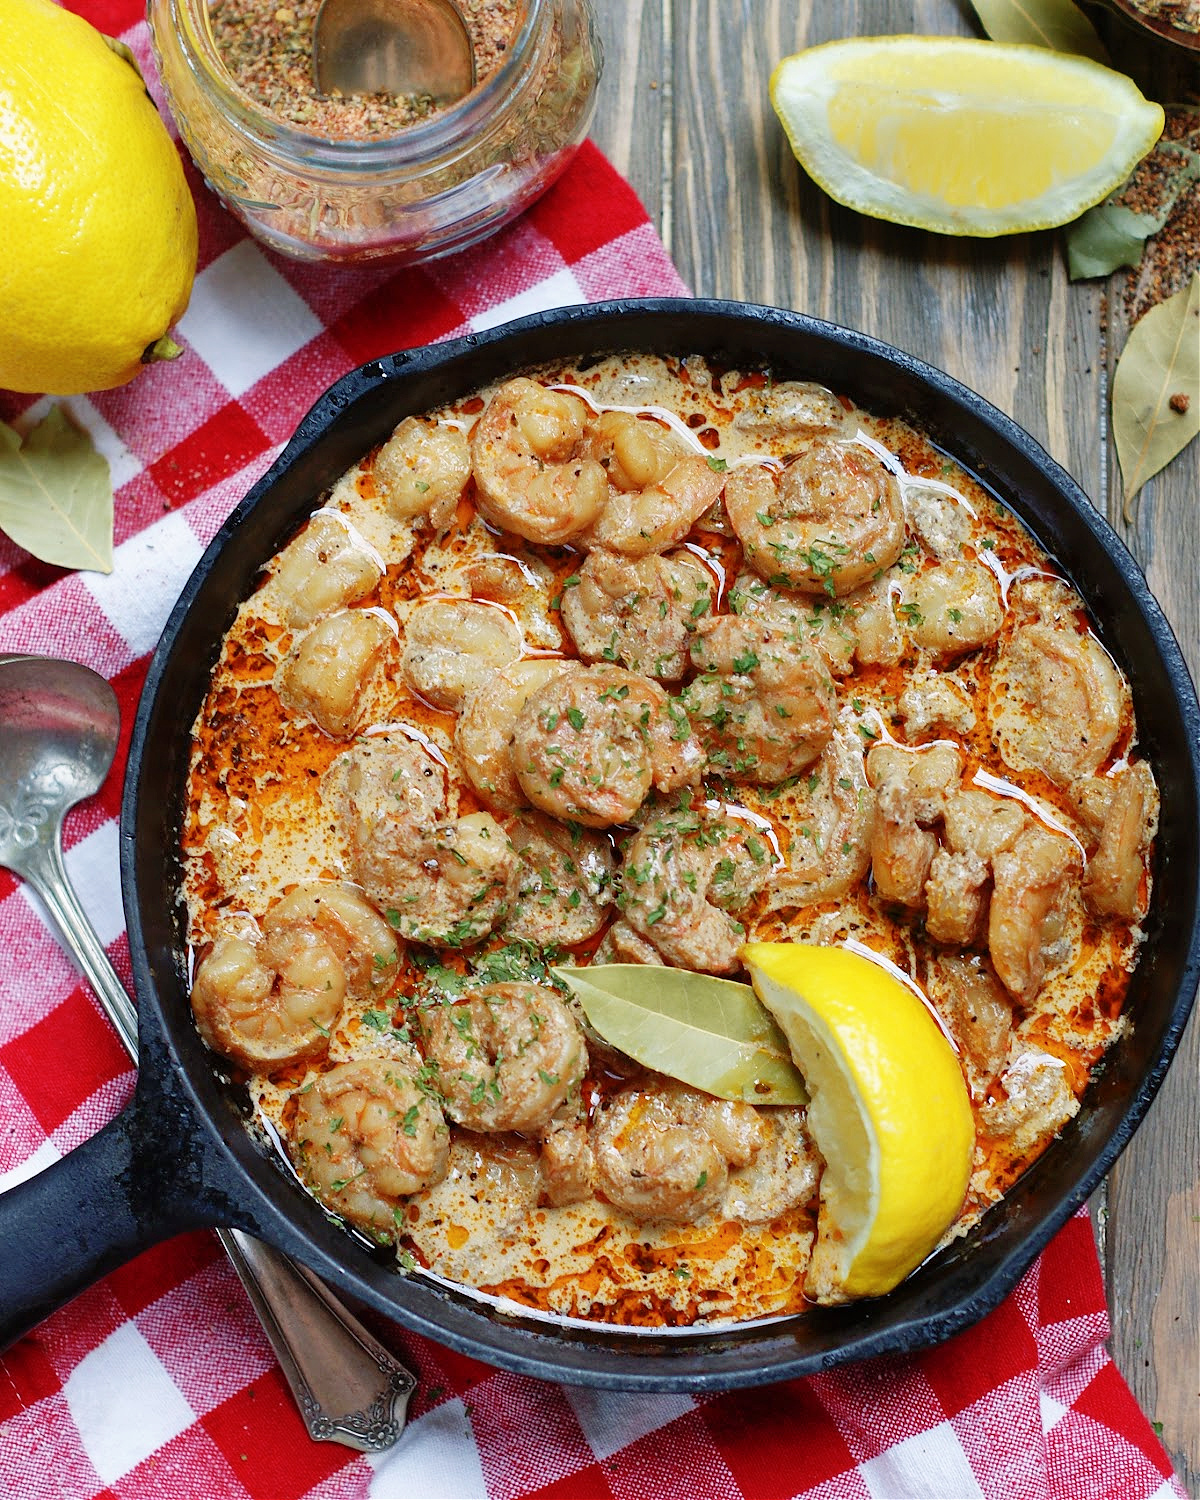 New Orleans BBQ Shrimp with lemon and sauce